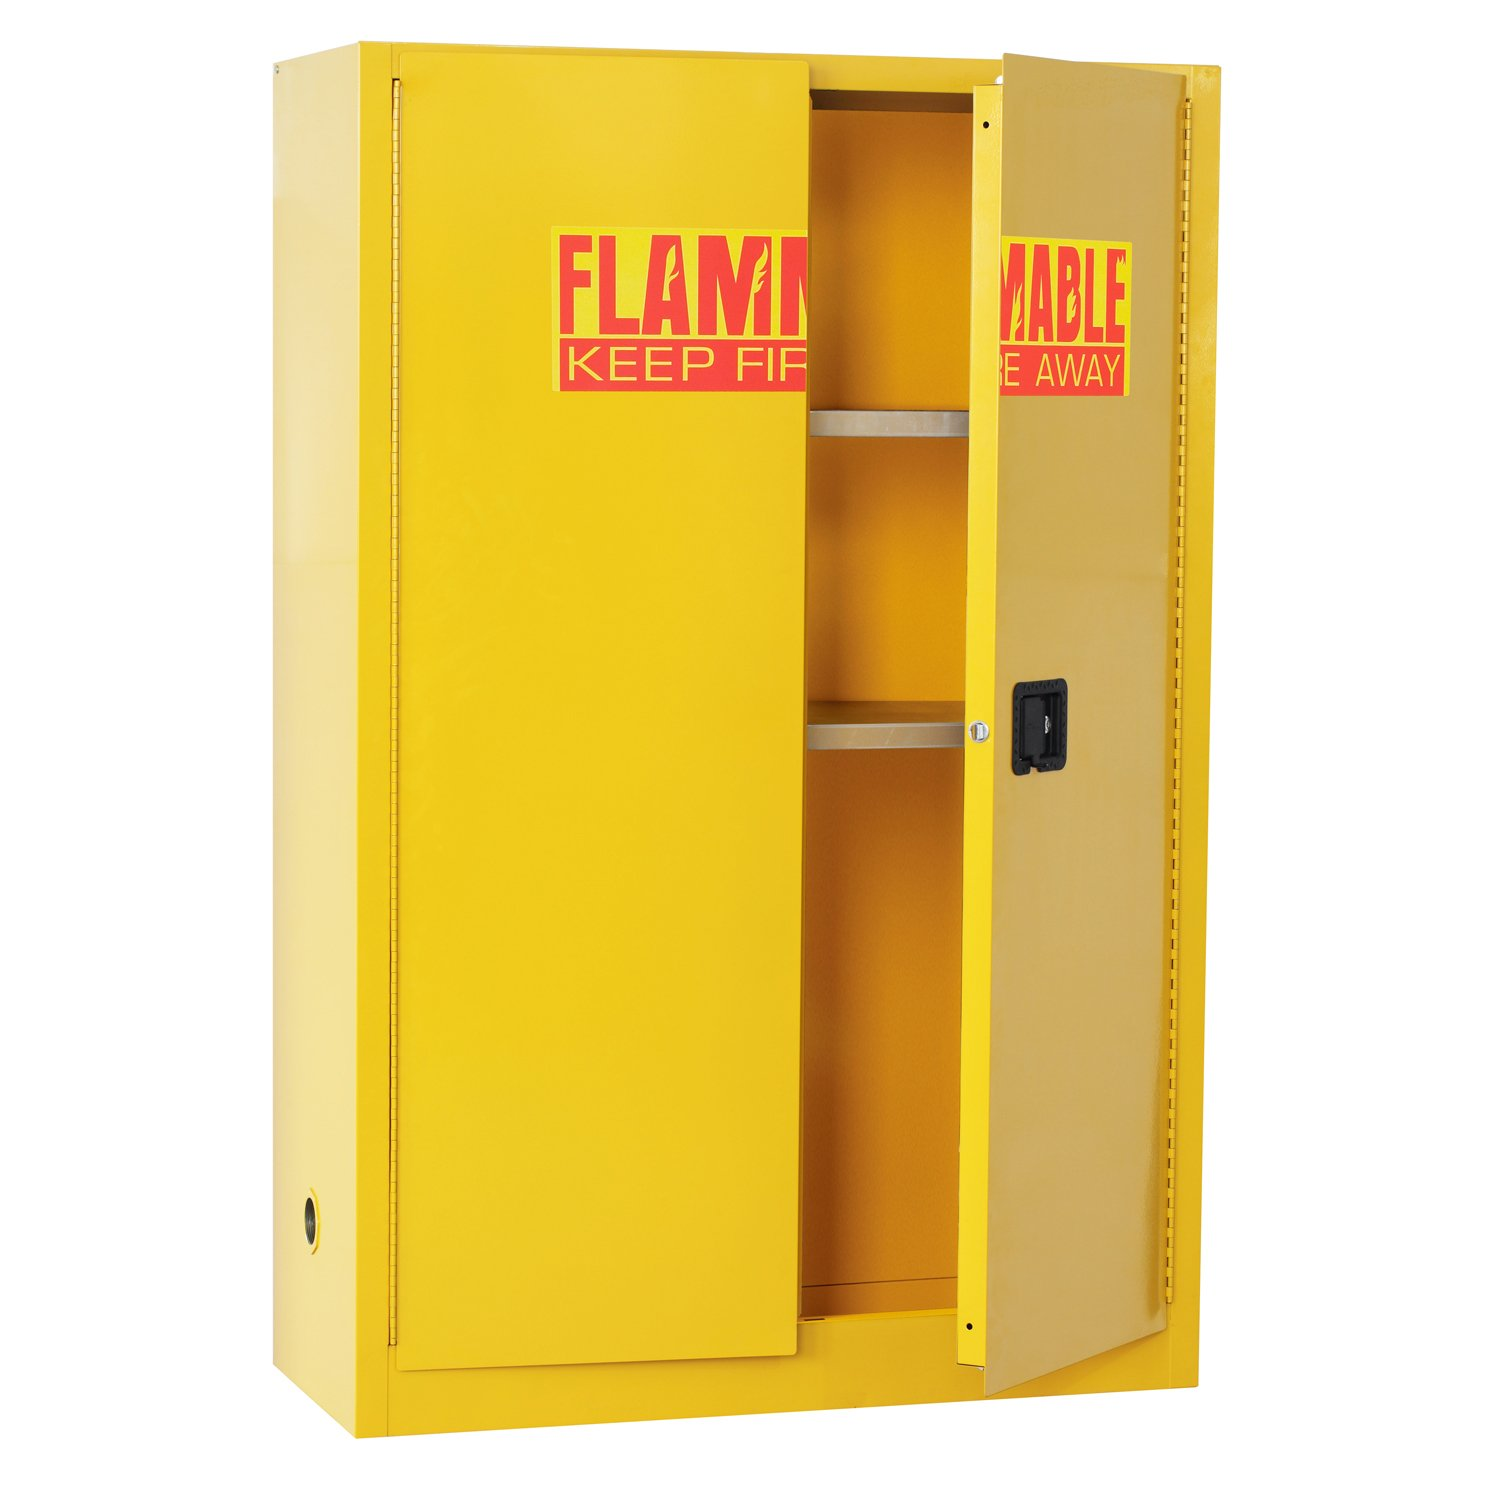 Sandusky Lee SC450F Yellow Steel Safety Cabinet for Flammable Liquids, 2 Shelves, 2 Door Manual Close, 45 Gallon Capacity, 65'' Height x 43'' Width x 18'' Depth